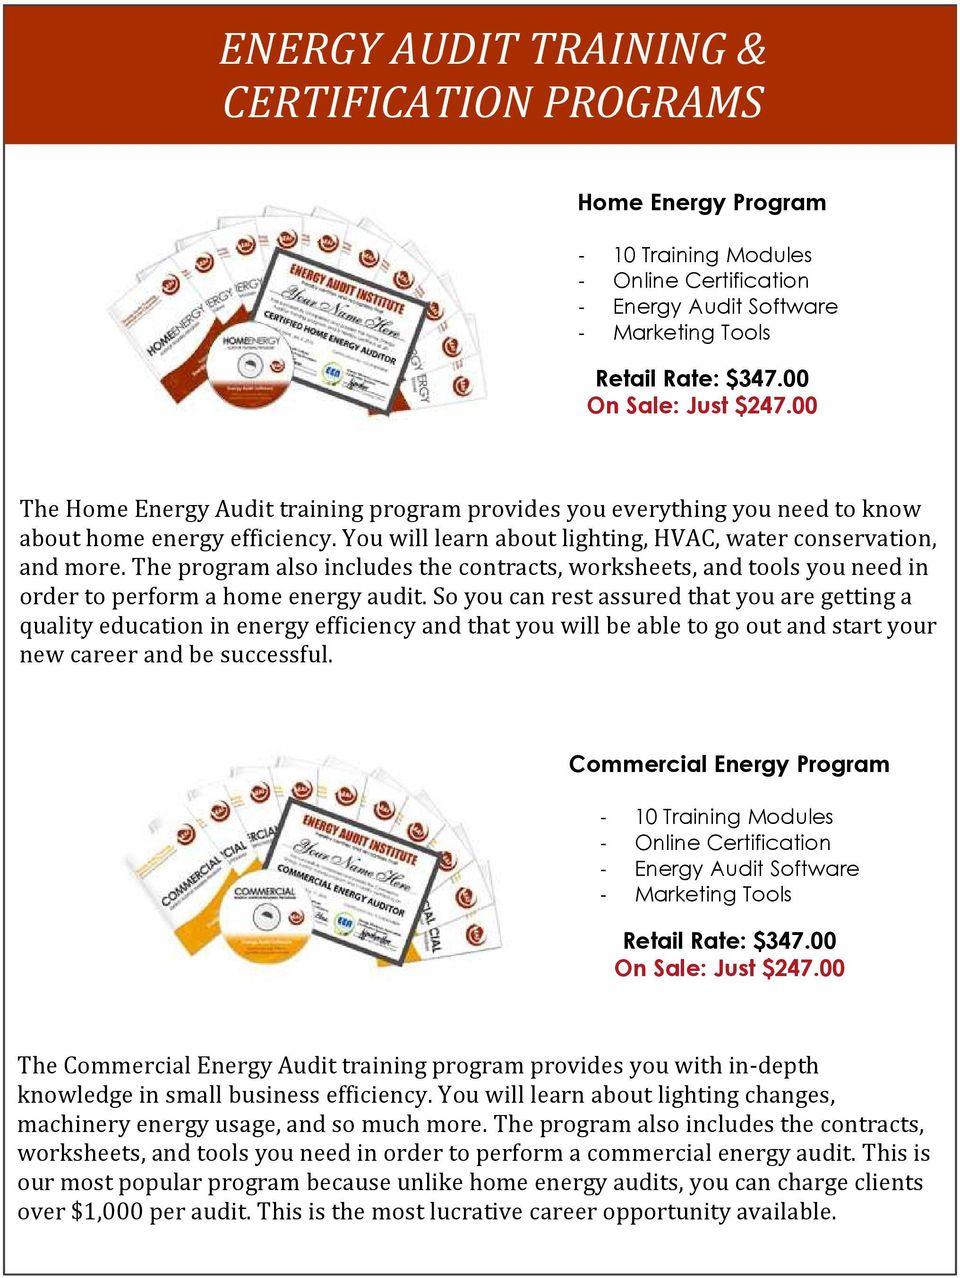 The program also includes the contracts, worksheets, and tools you need in order to perform a home energy audit.